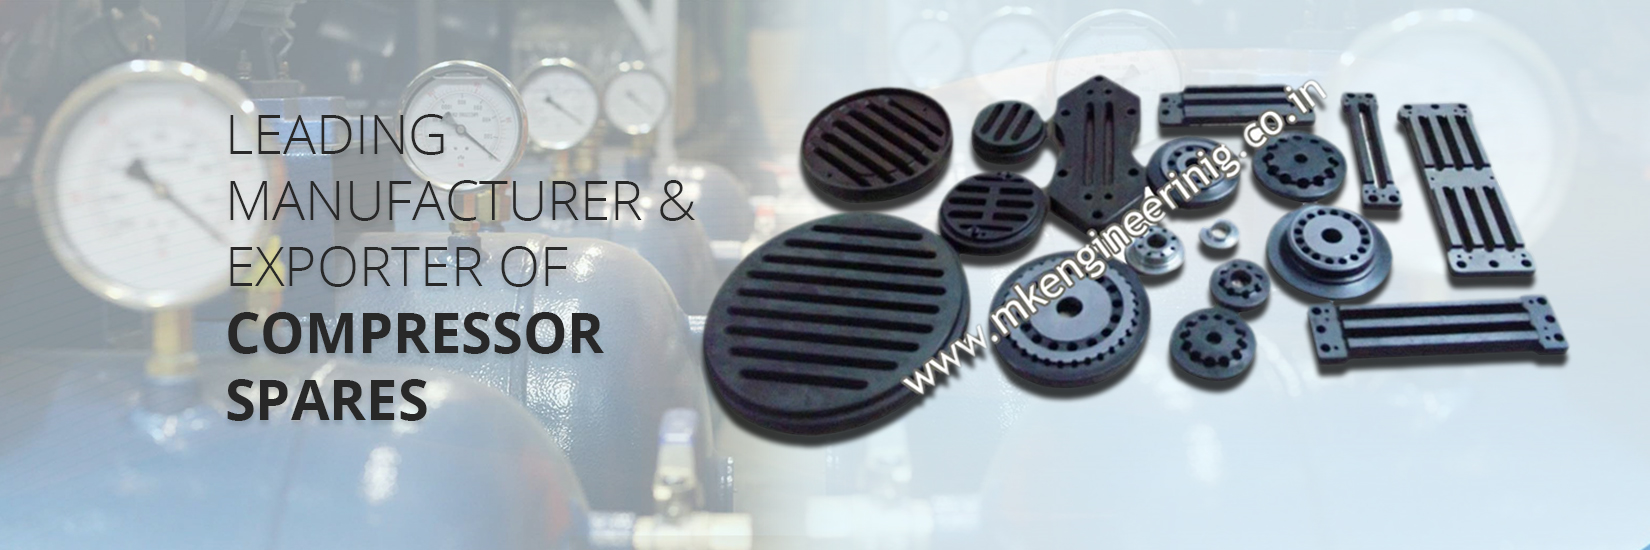 Leading Manufacturer and Exporter of Compressor Spares in Ahmedabad